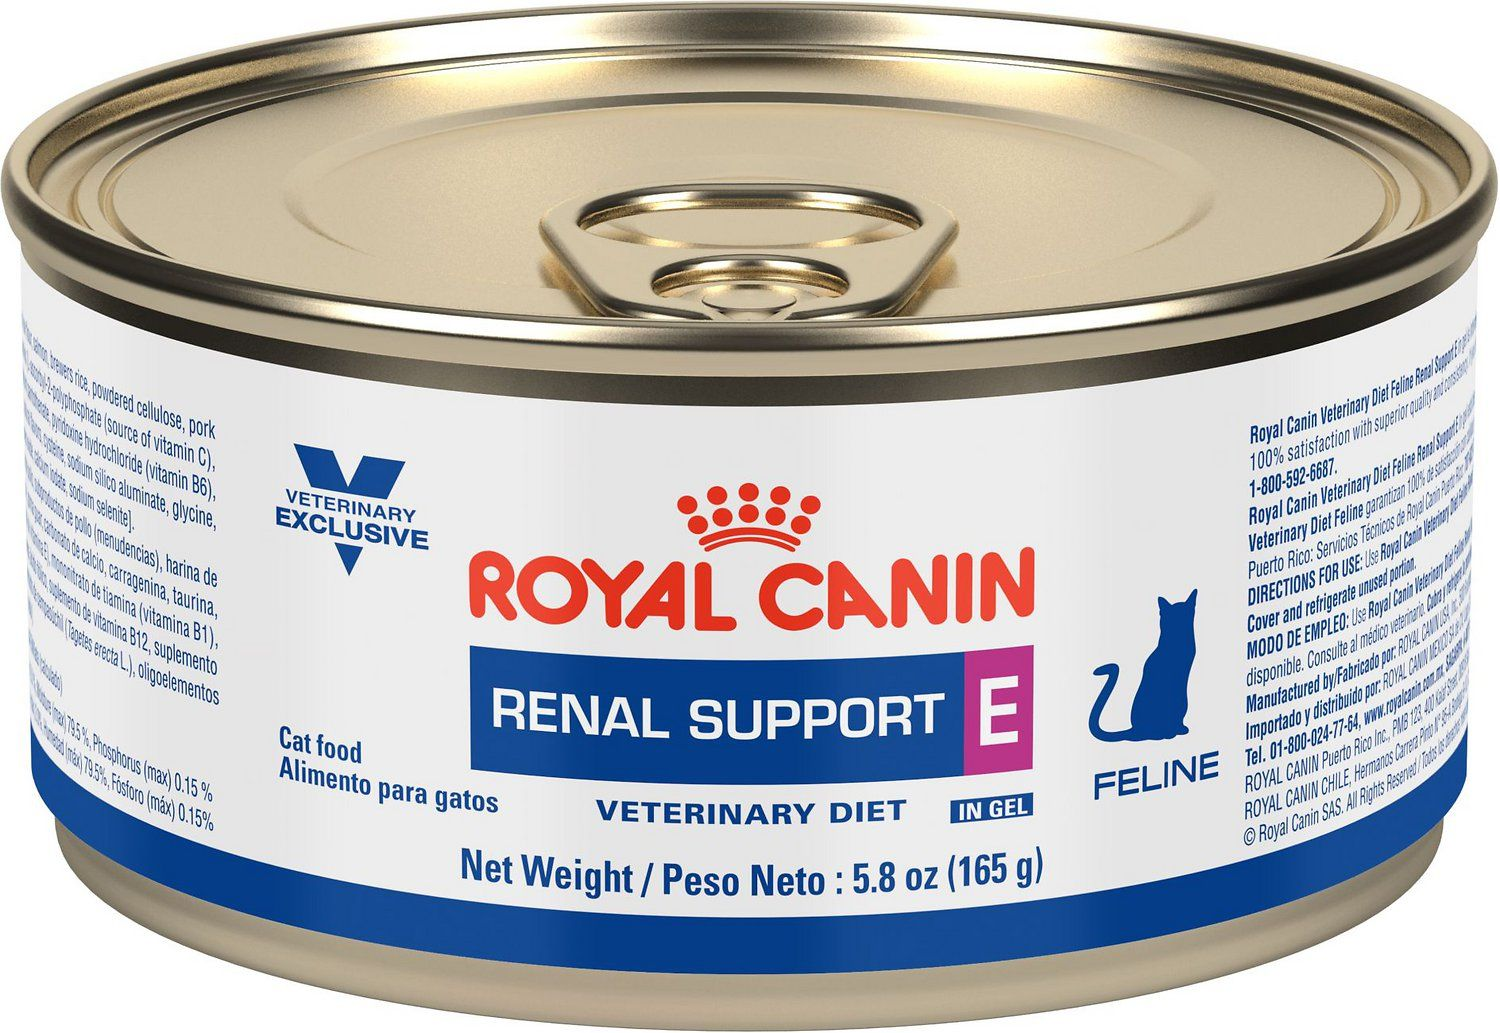 Royal Canin Veterinary Diet Renal Support E Canned Cat